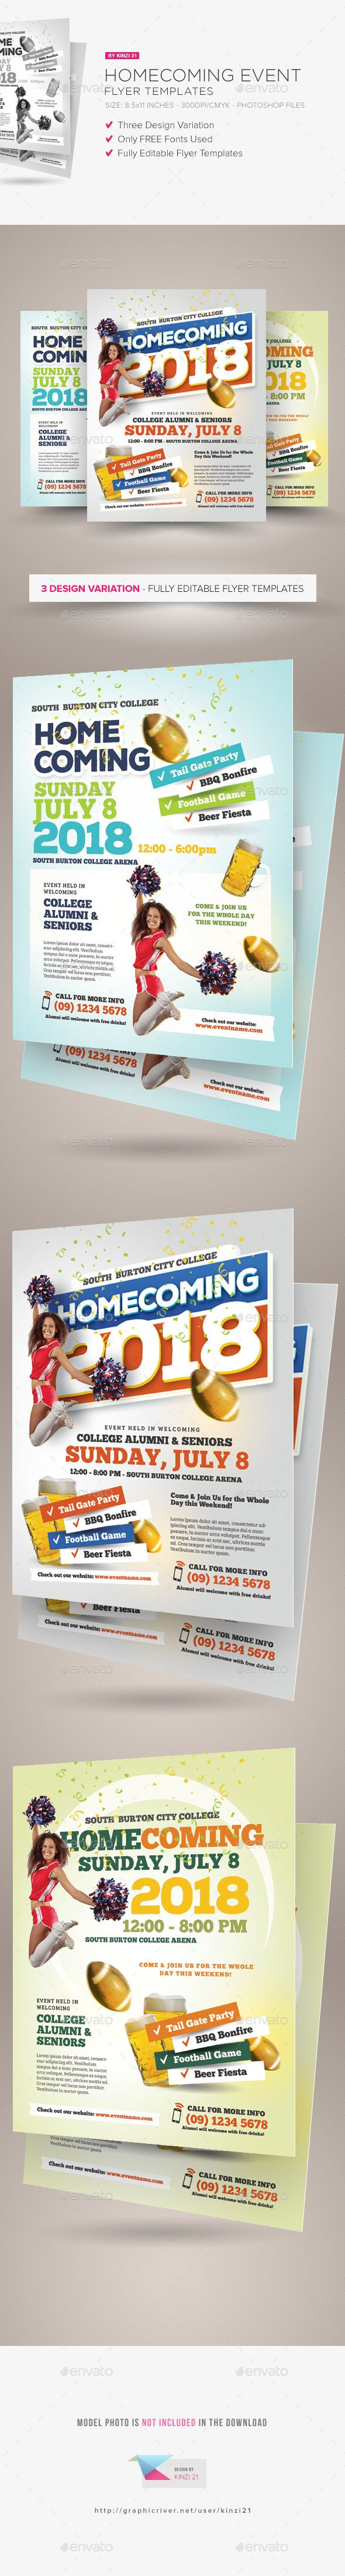 Pin By Dejunae Pickett On Diy Pinterest Flyer Template Event